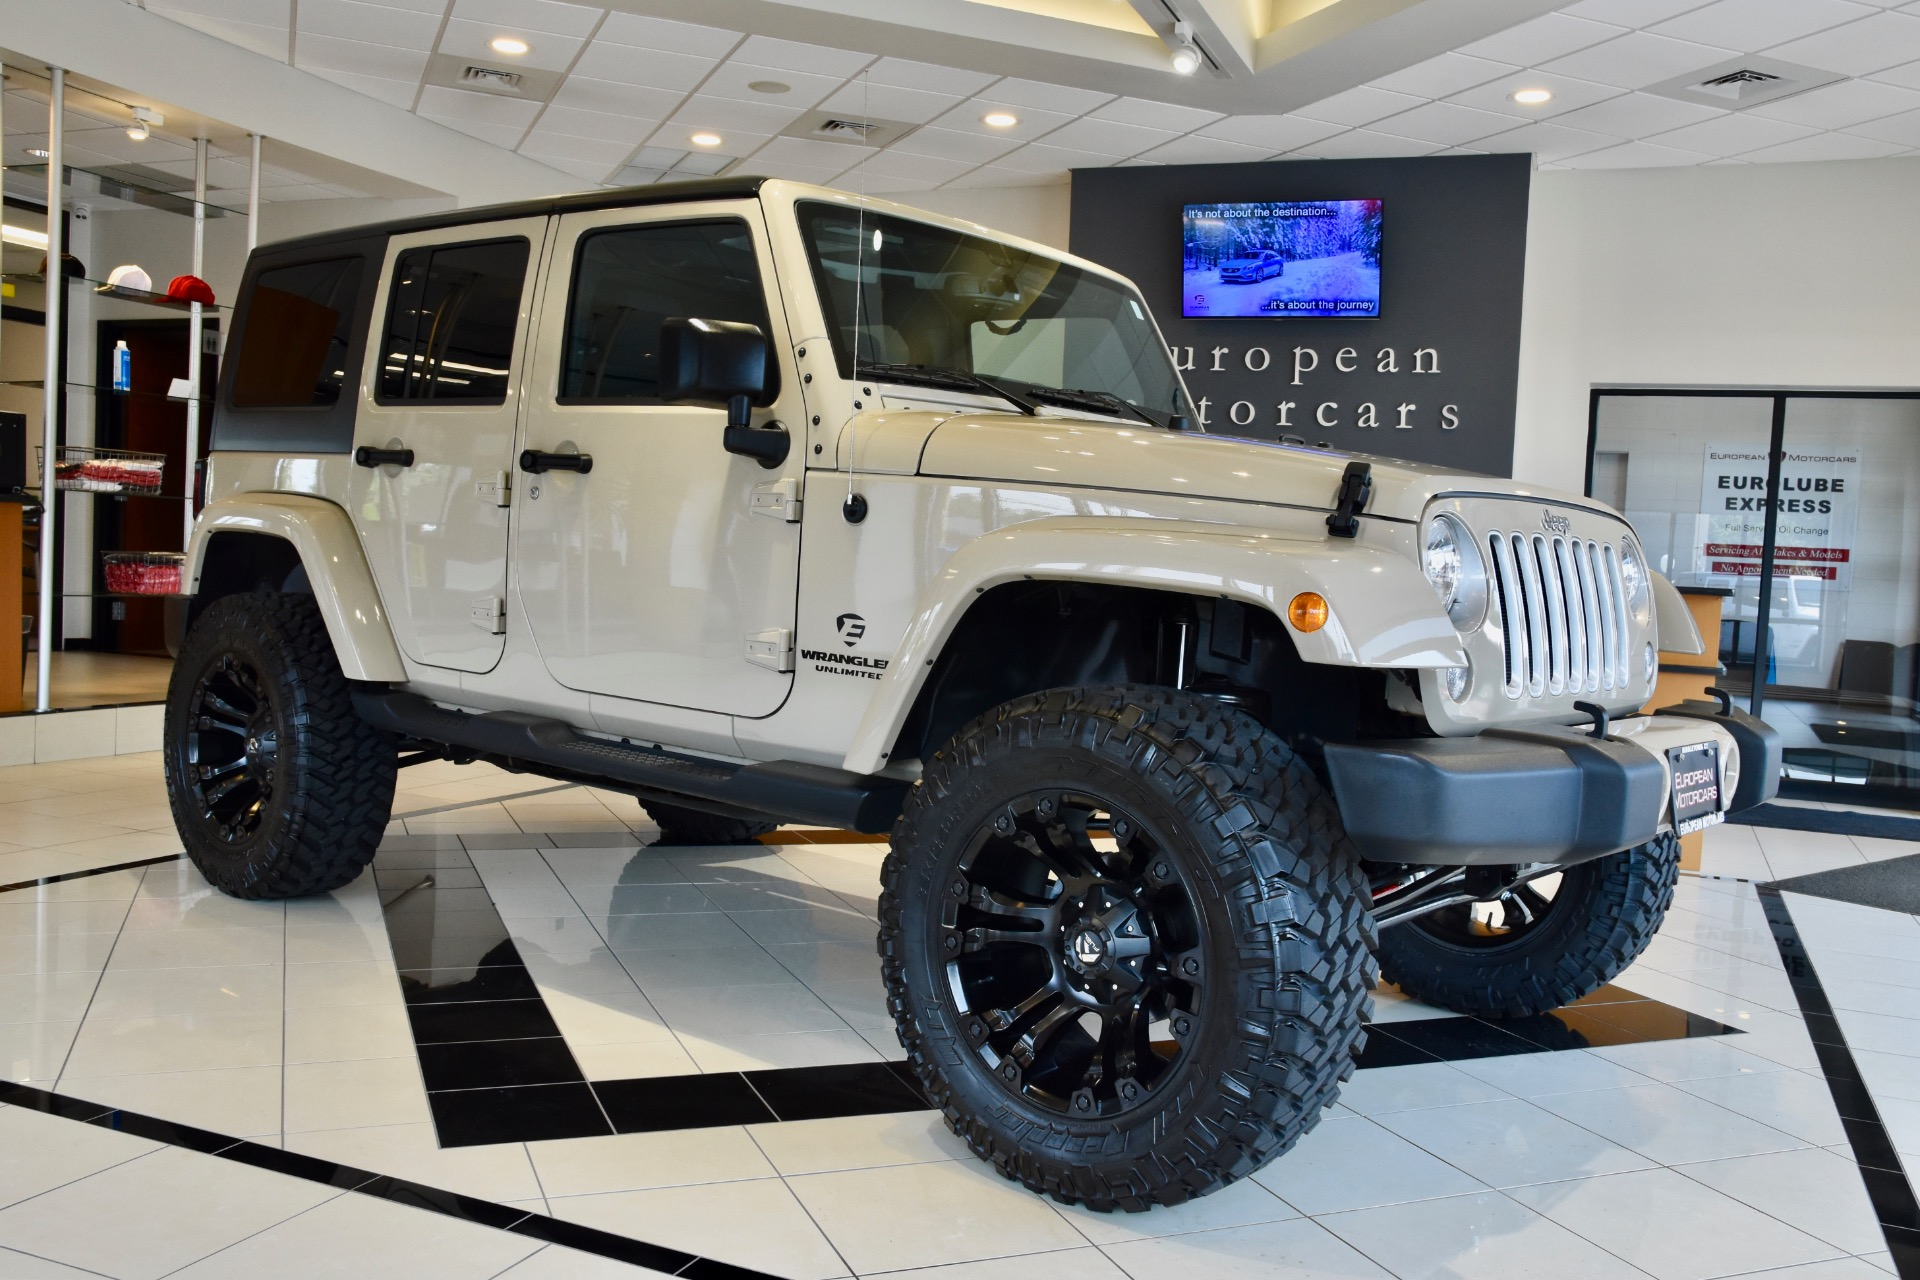 Jeep Wrangler For Sale Ct >> 2016 Jeep Wrangler Unlimited CUSTOM LIFTED Sahara for sale ...